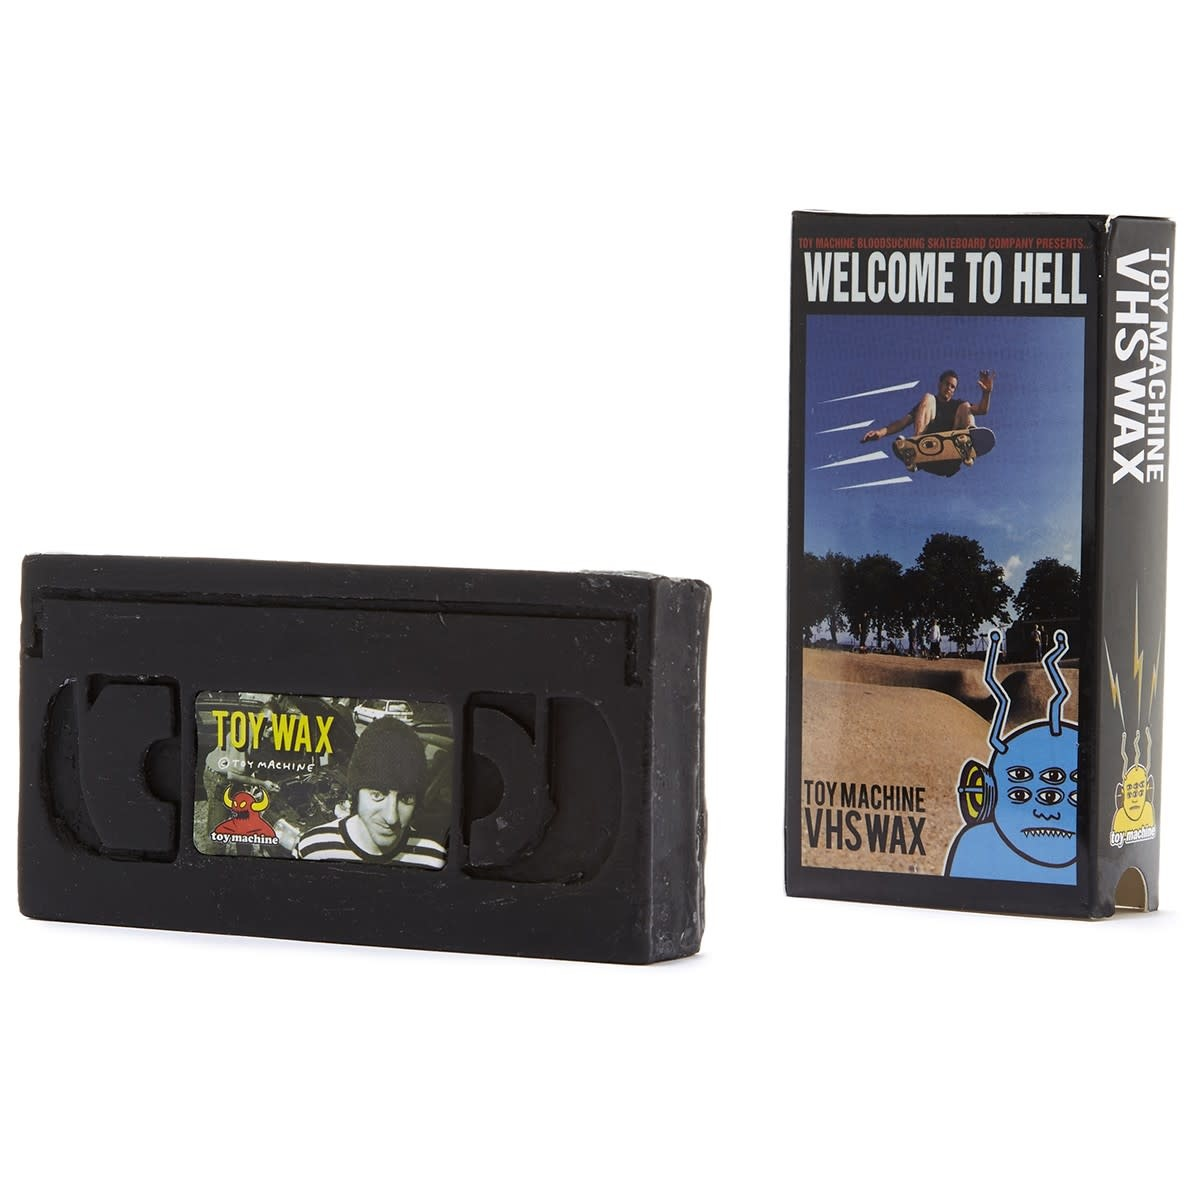 Toy Machine Welcome To Hell VHS Wax